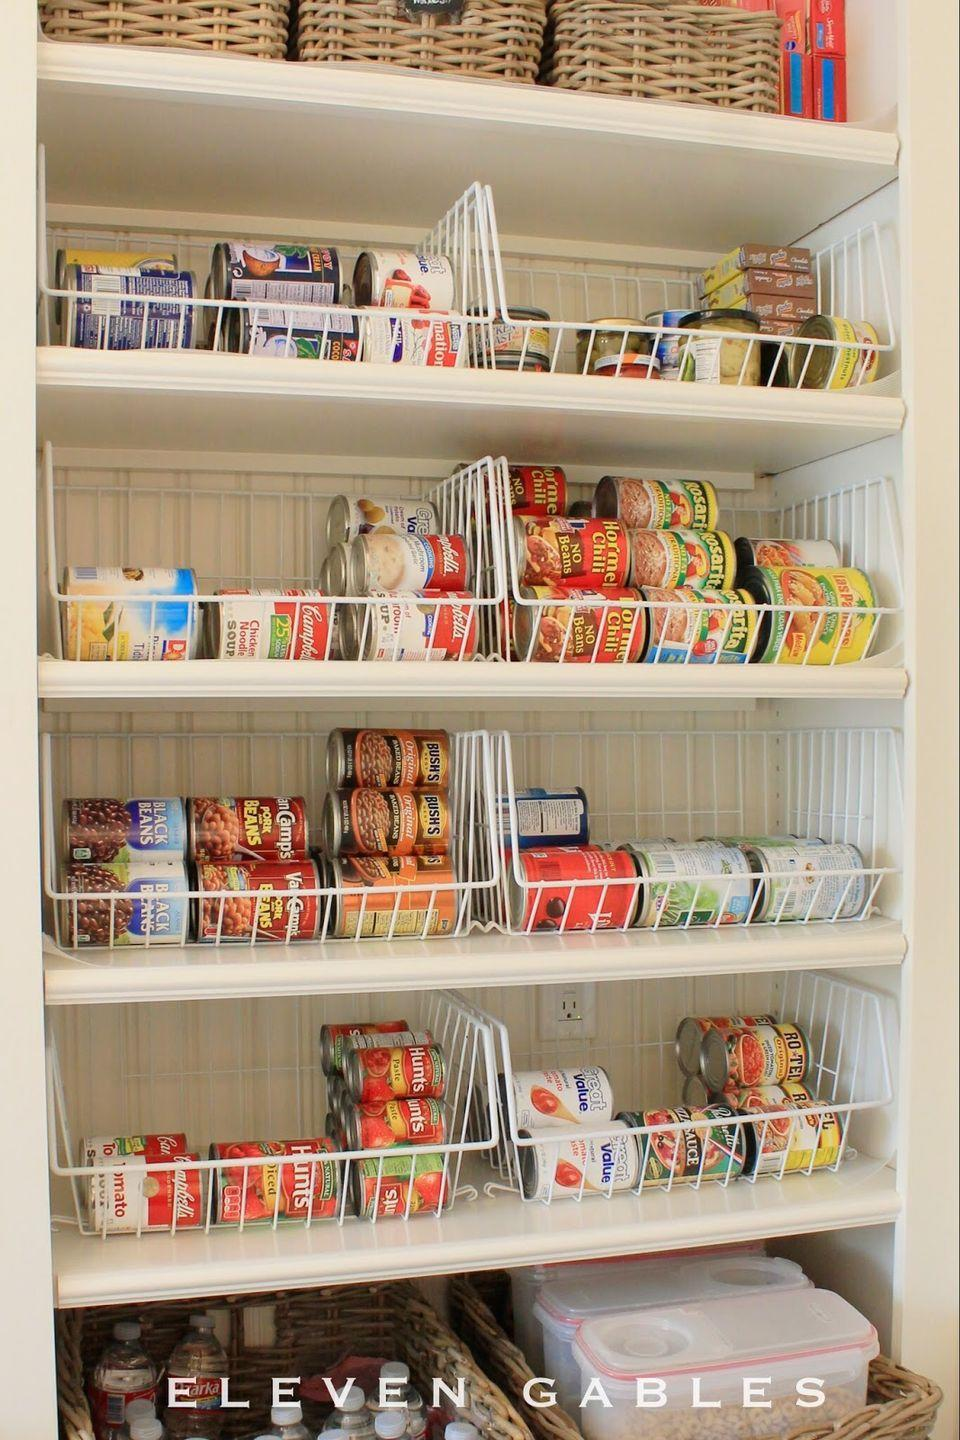 """<p>When stored on their sides, cans are stackable yet keep their labels in sight. Of course, you'll need to contain the sideways cans somehow —<span class=""""redactor-invisible-space""""> and these wire baskets are just the right thing for the job. Your organized pantry will thank you.</span></p><p><a href=""""http://www.elevengables.com/2014/07/eleven-gables-butler-pantry.html"""" rel=""""nofollow noopener"""" target=""""_blank"""" data-ylk=""""slk:See more at Eleven Gables »"""" class=""""link rapid-noclick-resp""""><em>See more at Eleven Gables »</em></a></p>"""